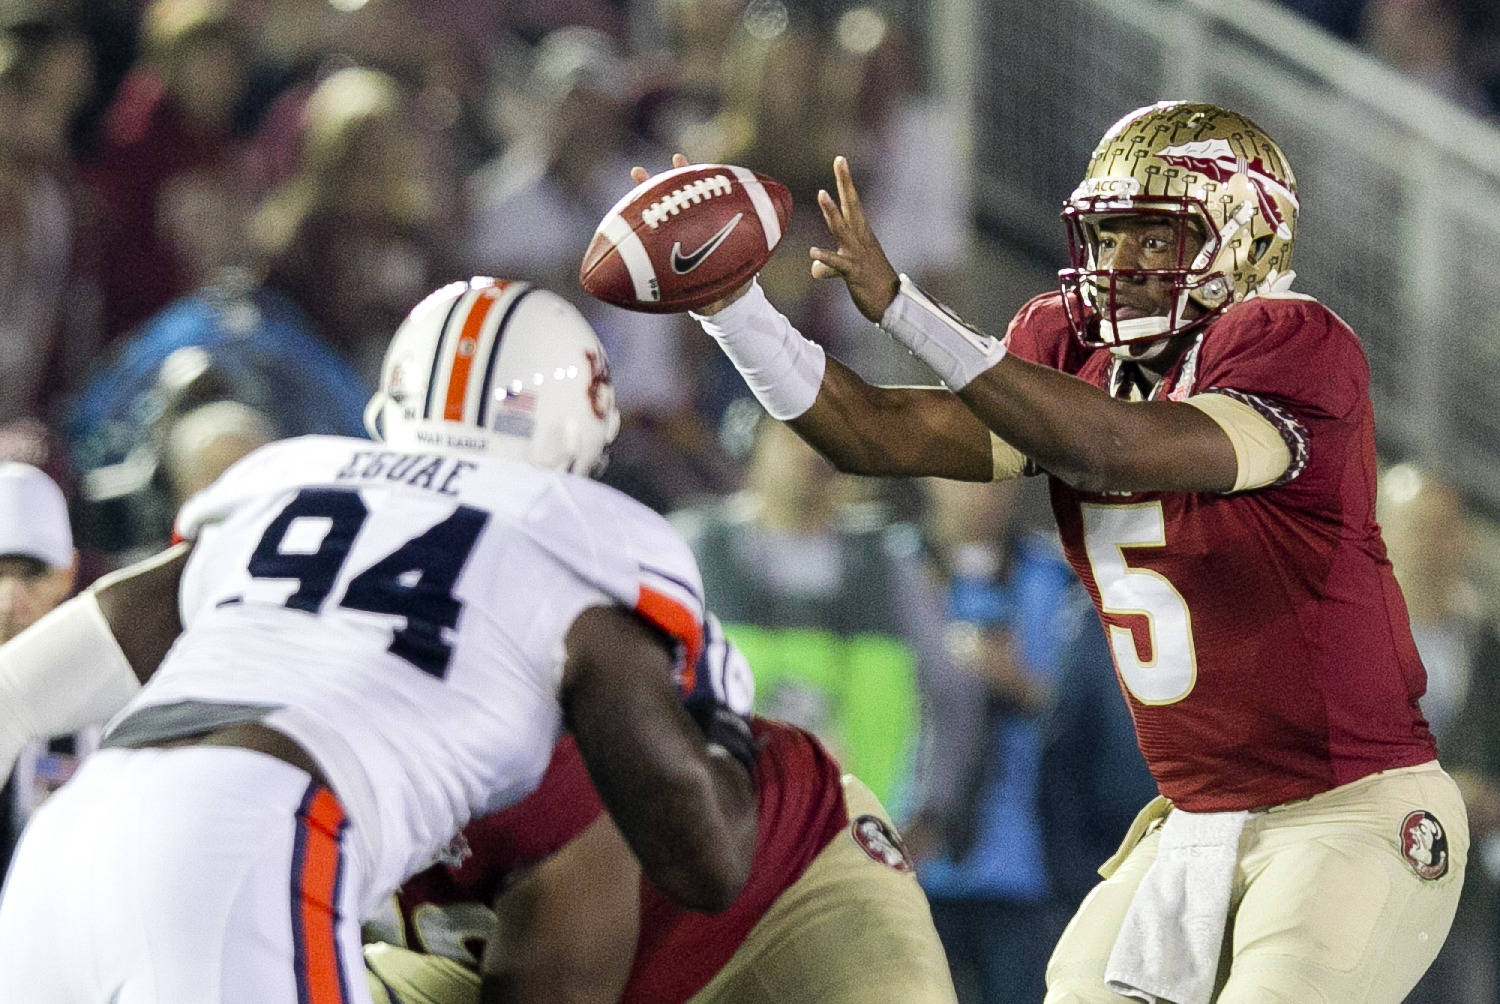 Jameis Winston (5) receiving a snap, BCS Championship, FSU vs Auburn, Rose Bowl, Pasadena, CA,  1-06-14,  (Photo by Steve Musco)